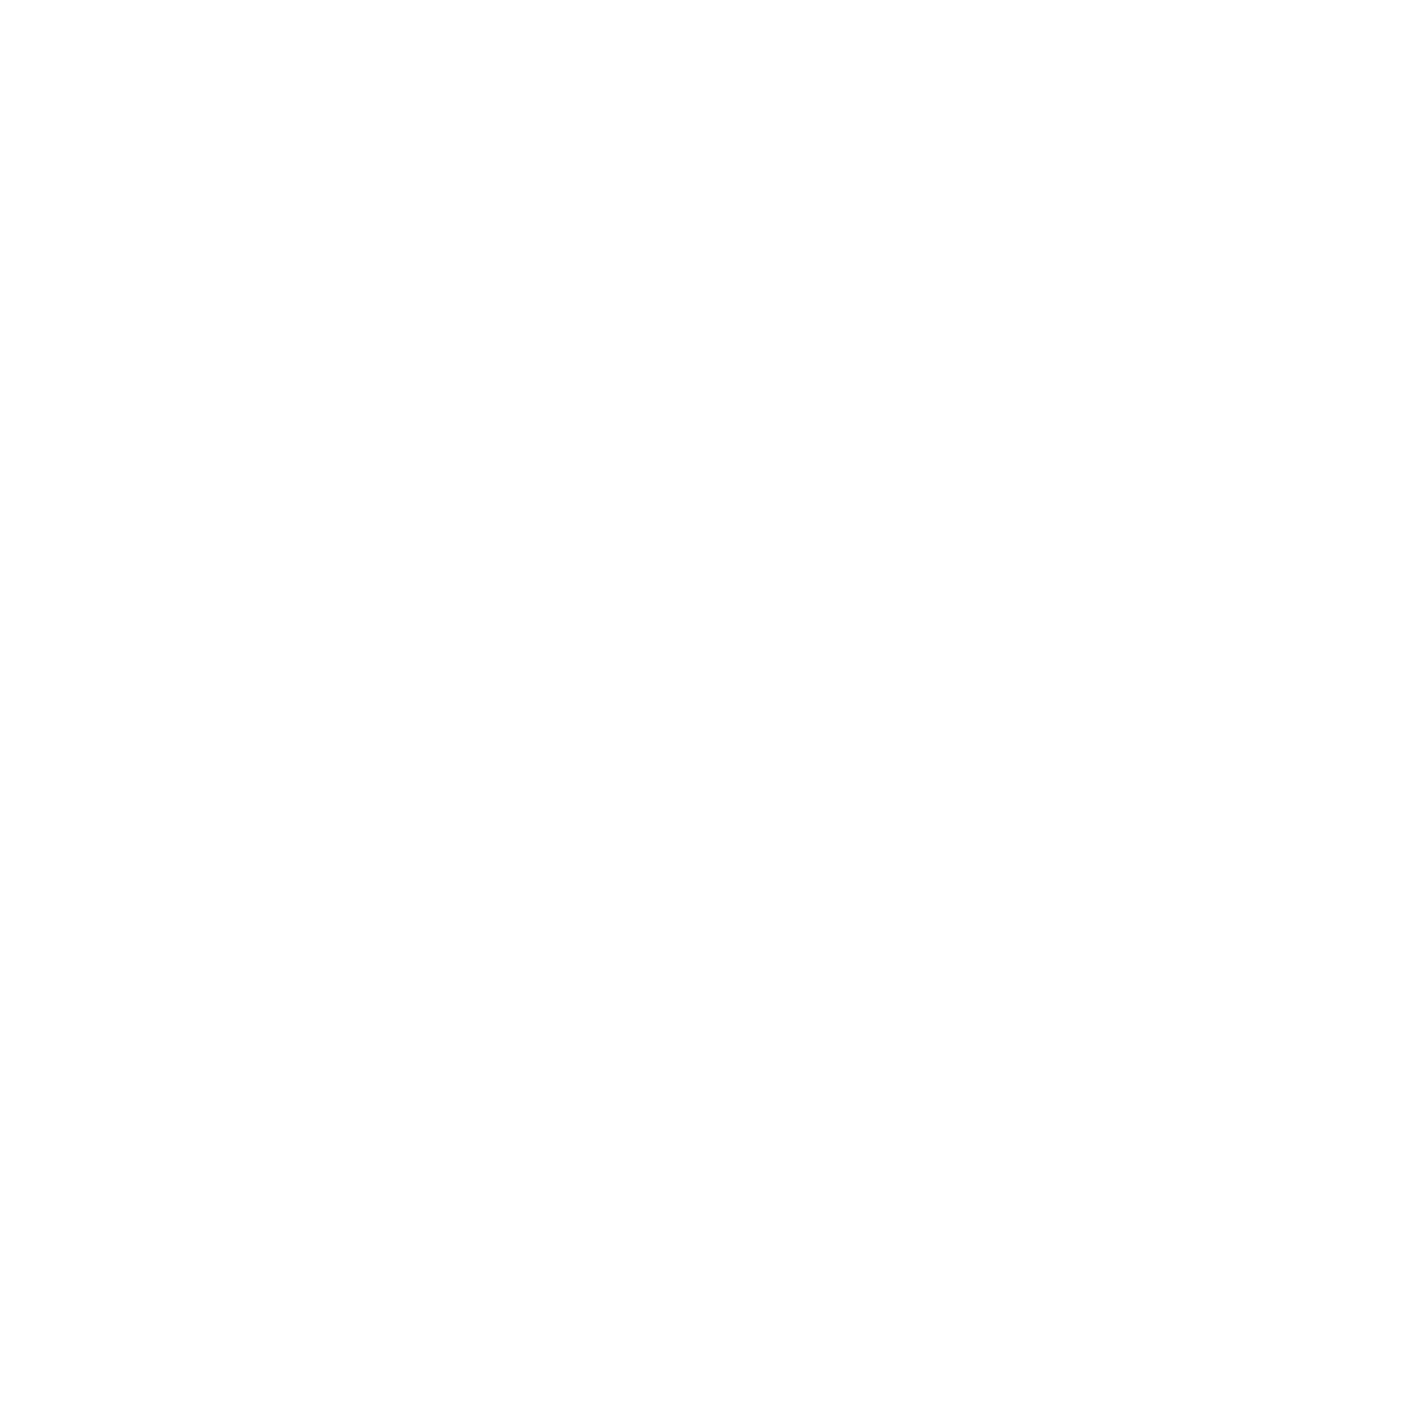 circular lines used to make up background of the graphics